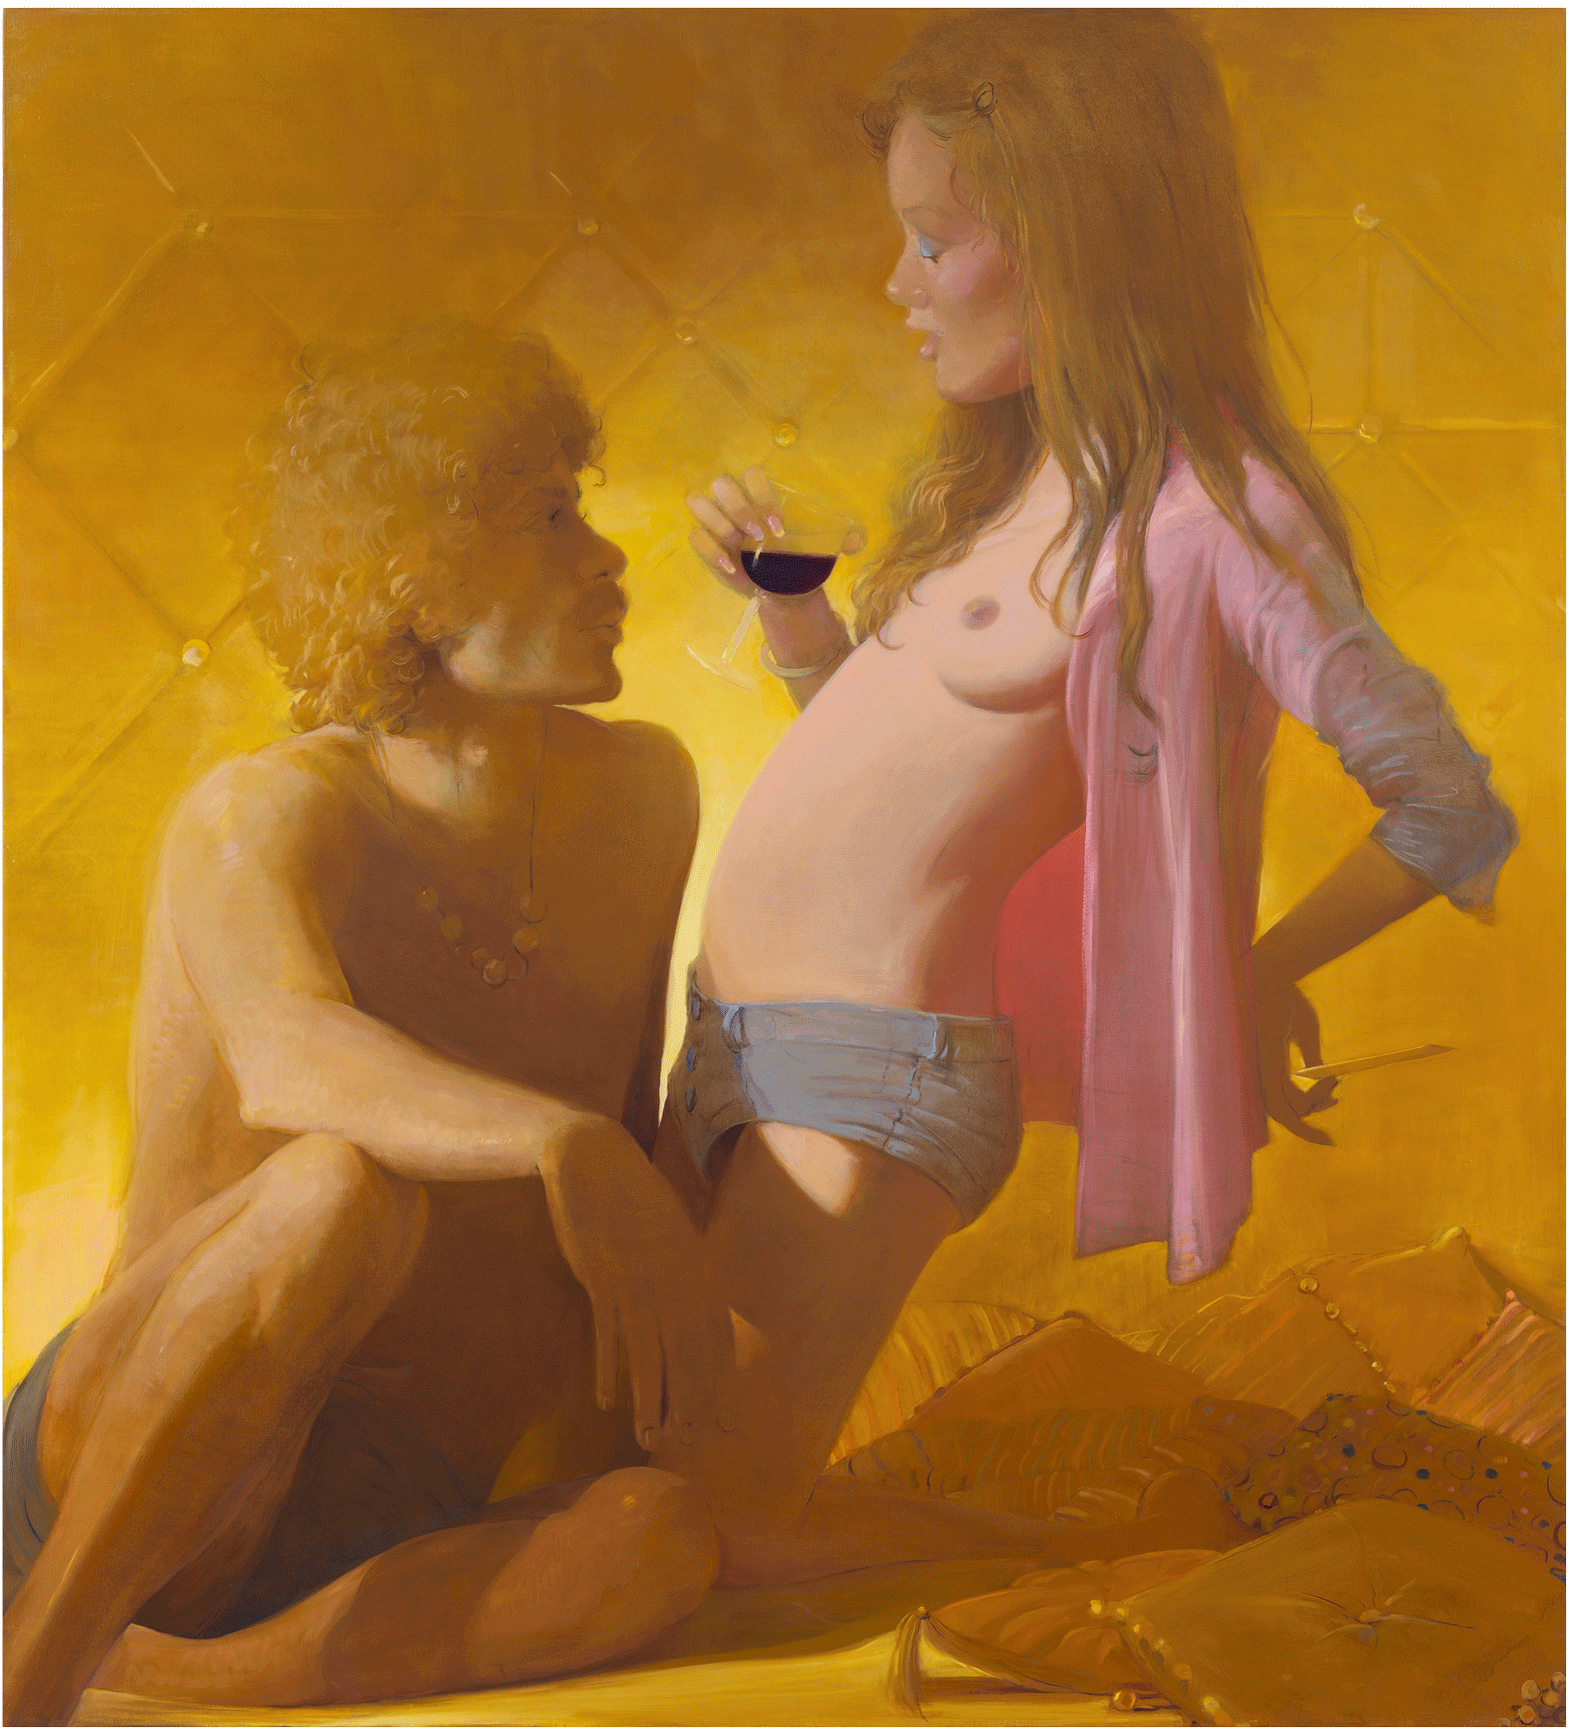 Lisa Yuskavage, Golden Couple, 2018, oil on linen, 77 1/8 x 70 inches (courtesy of David Zwirner Gallery)